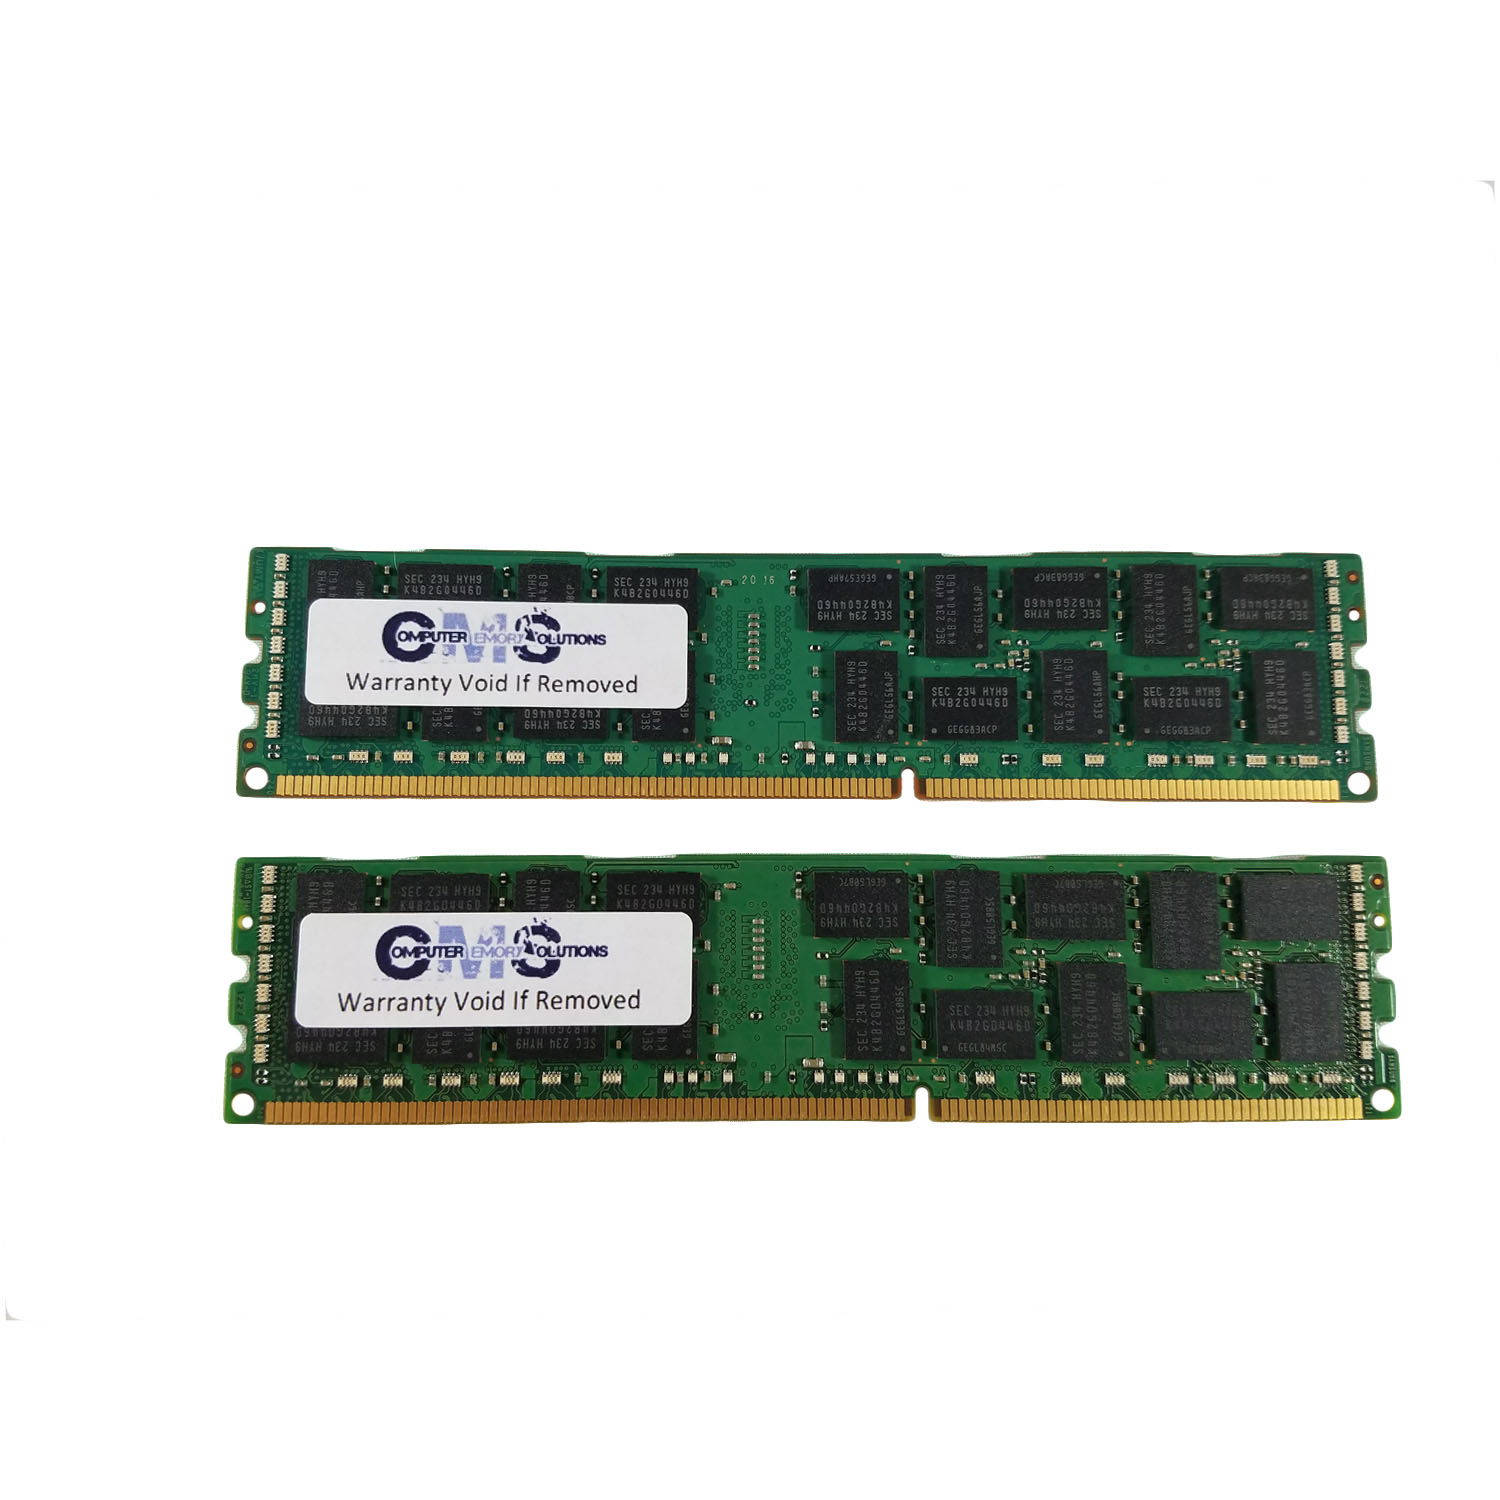 16Gb (2X8Gb) Ram Memory For Hp/Compaq Proliant Sl270S Gen8 (G8) EccR For Server Only By CMS B21